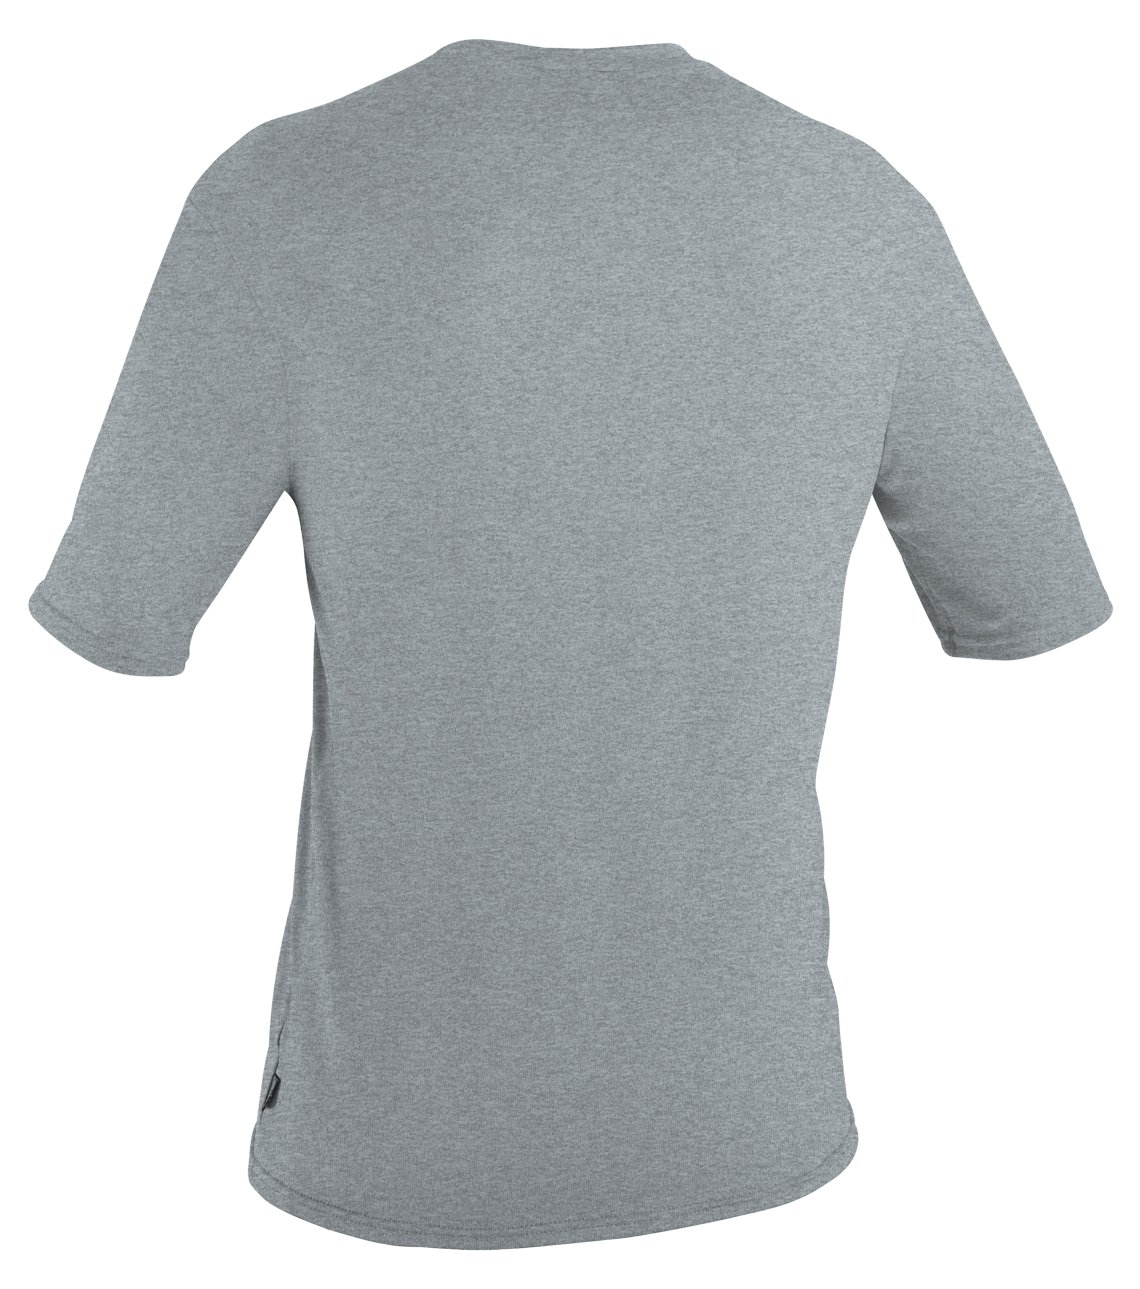 O'Neill Wetsuits Men's Hybrid UPF 50+ Short Sleeve Sun Shirt, CoolGrey by O'Neill Wetsuits (Image #2)